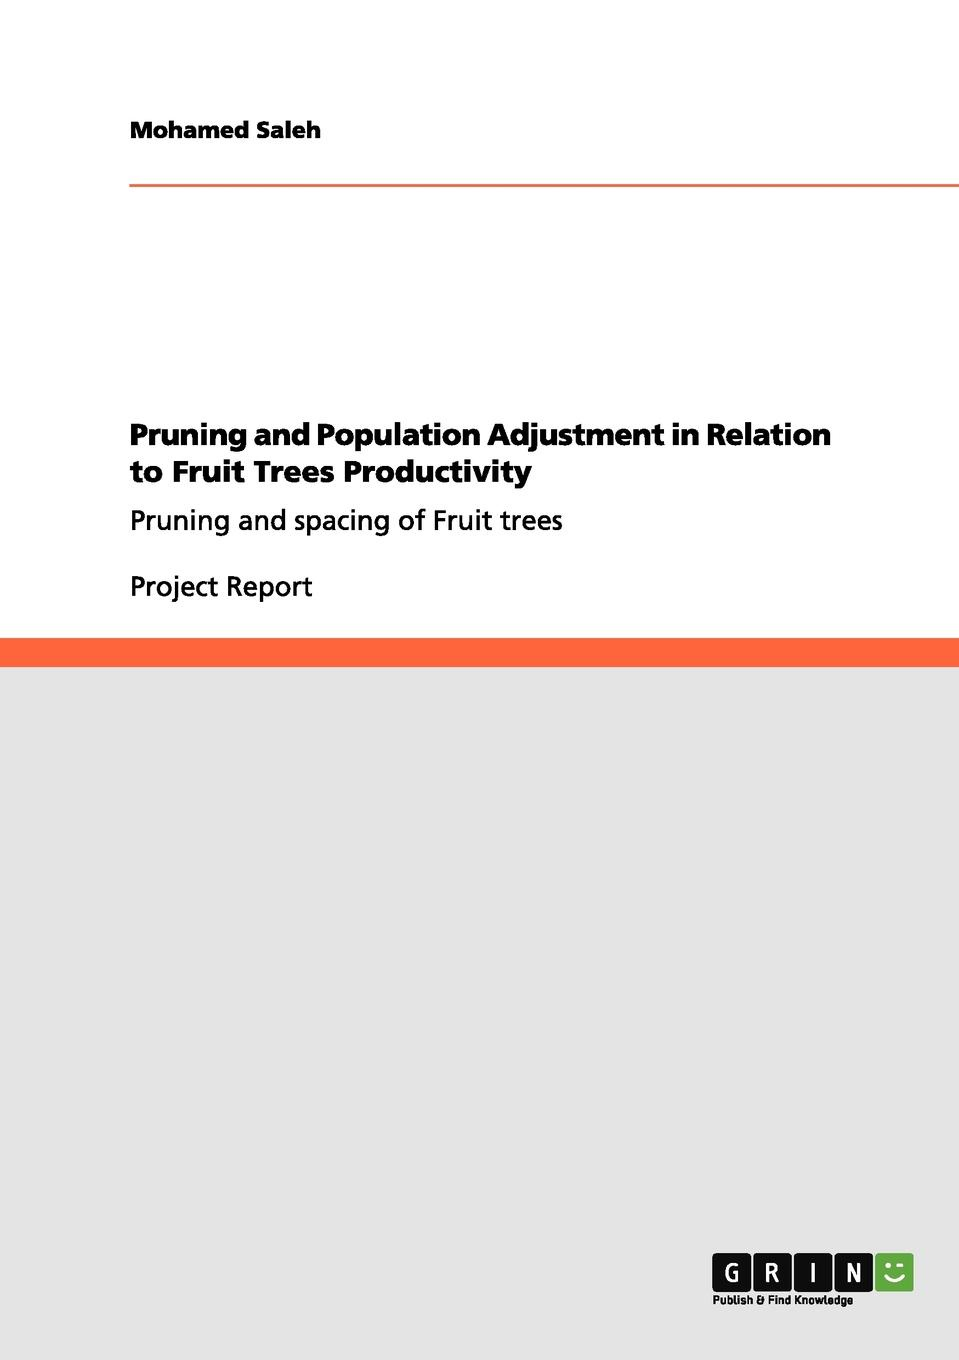 Mohamed Saleh Pruning and Population Adjustment in Relation to Fruit Trees Productivity